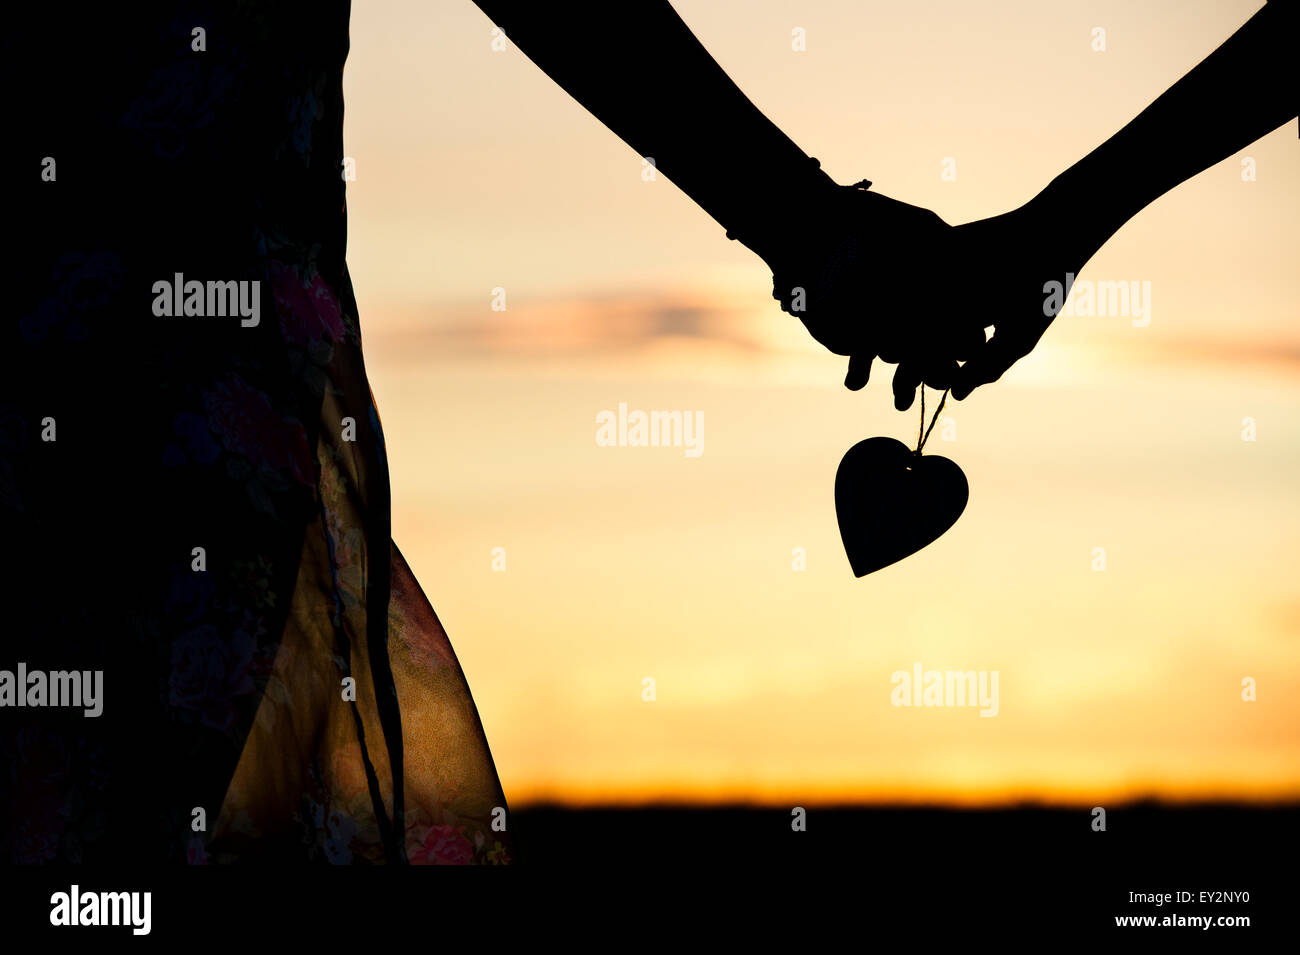 friends holding hands silhouette stock photos friends holding